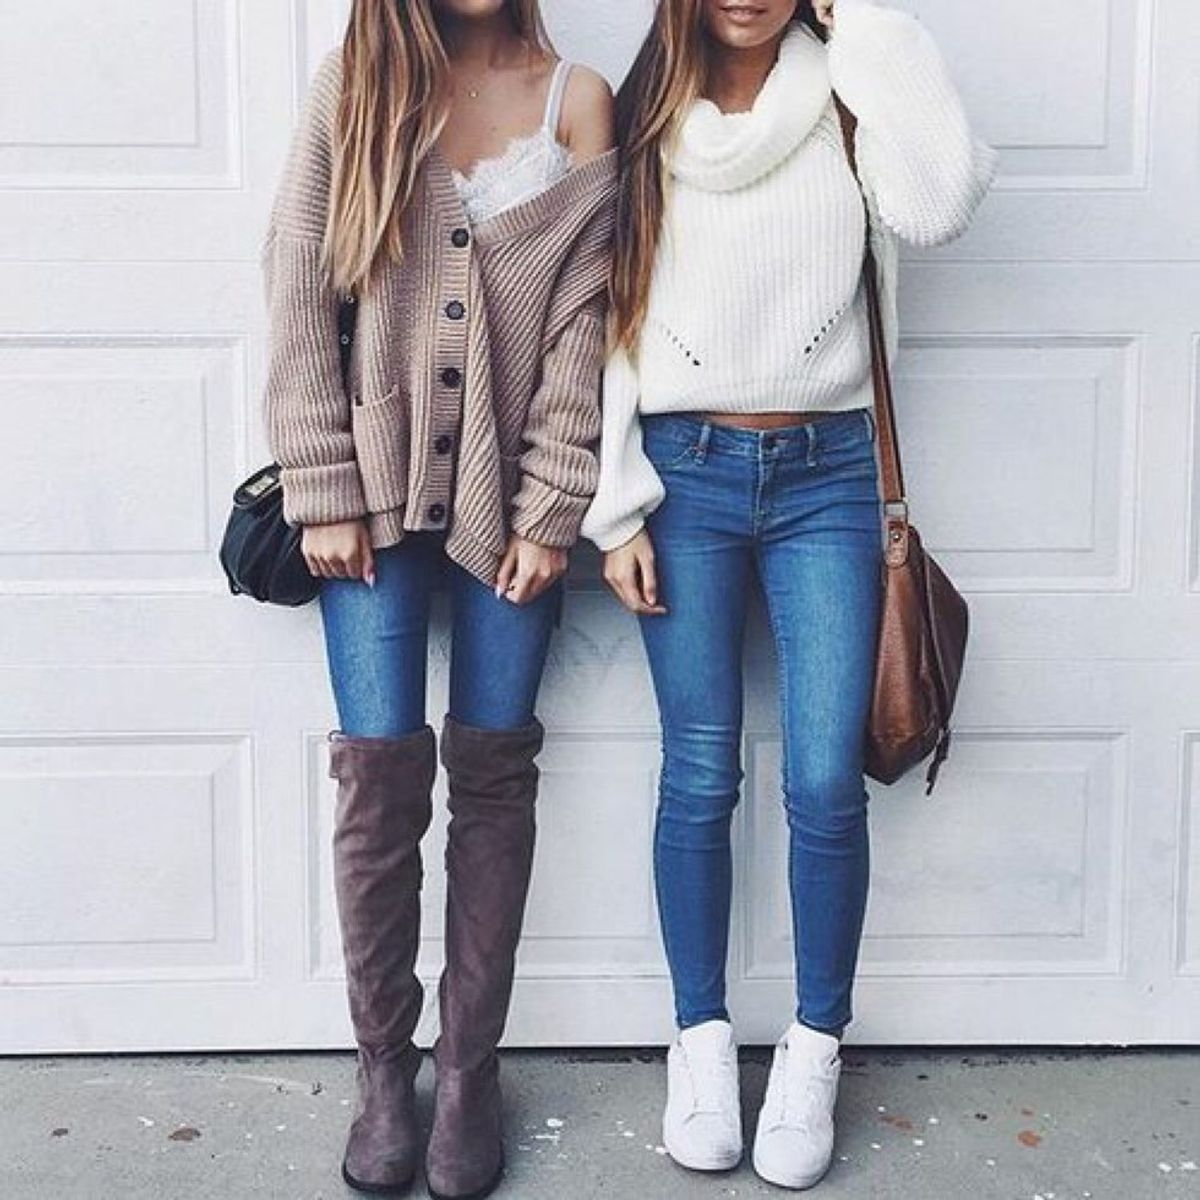 The Do's And Don't's Of College Fashion